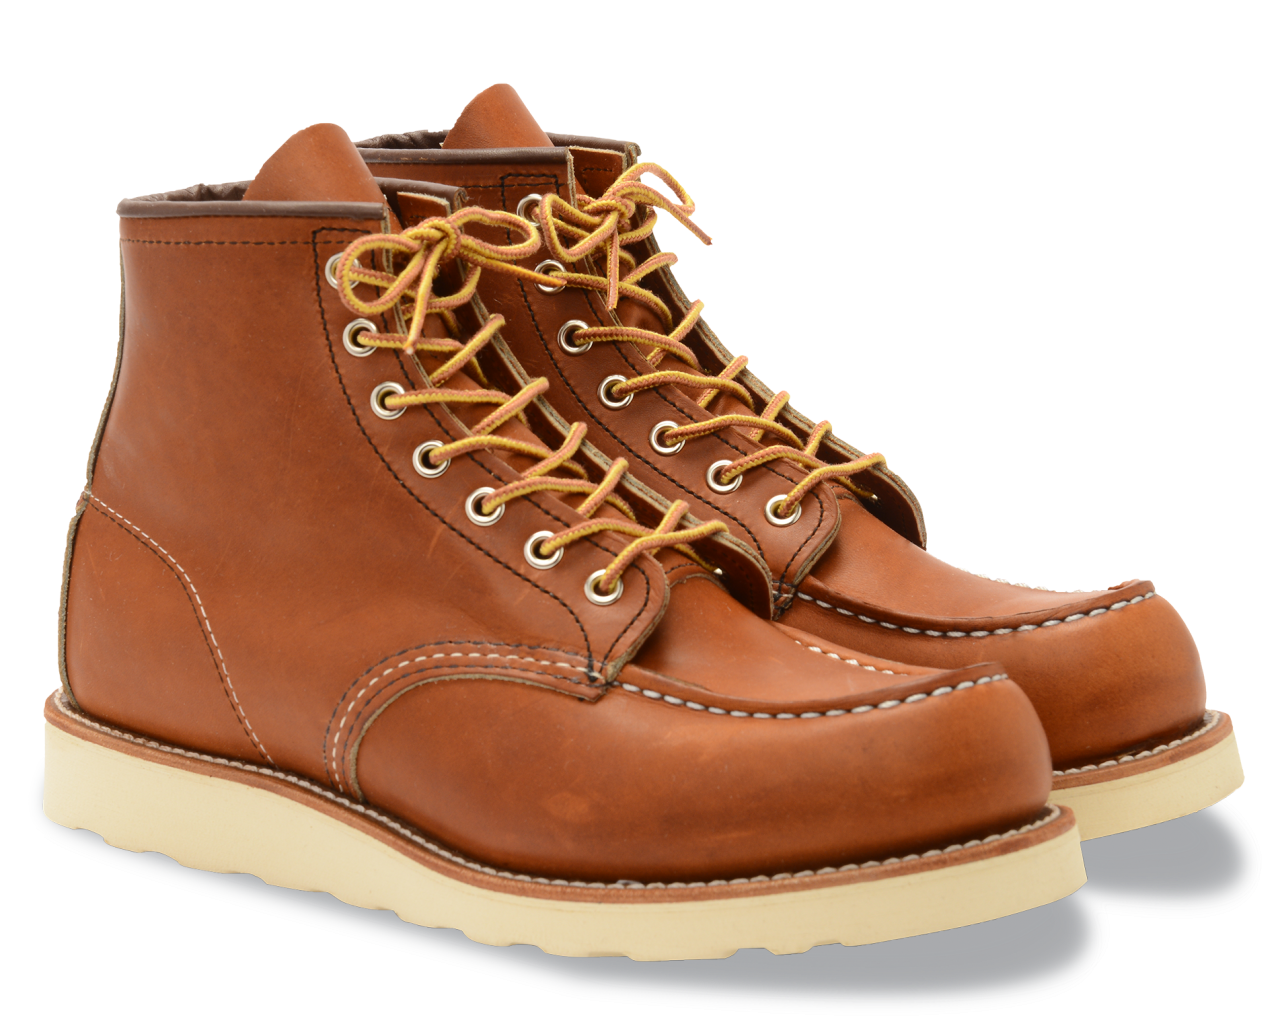 Red Wing 875 Moc Toe